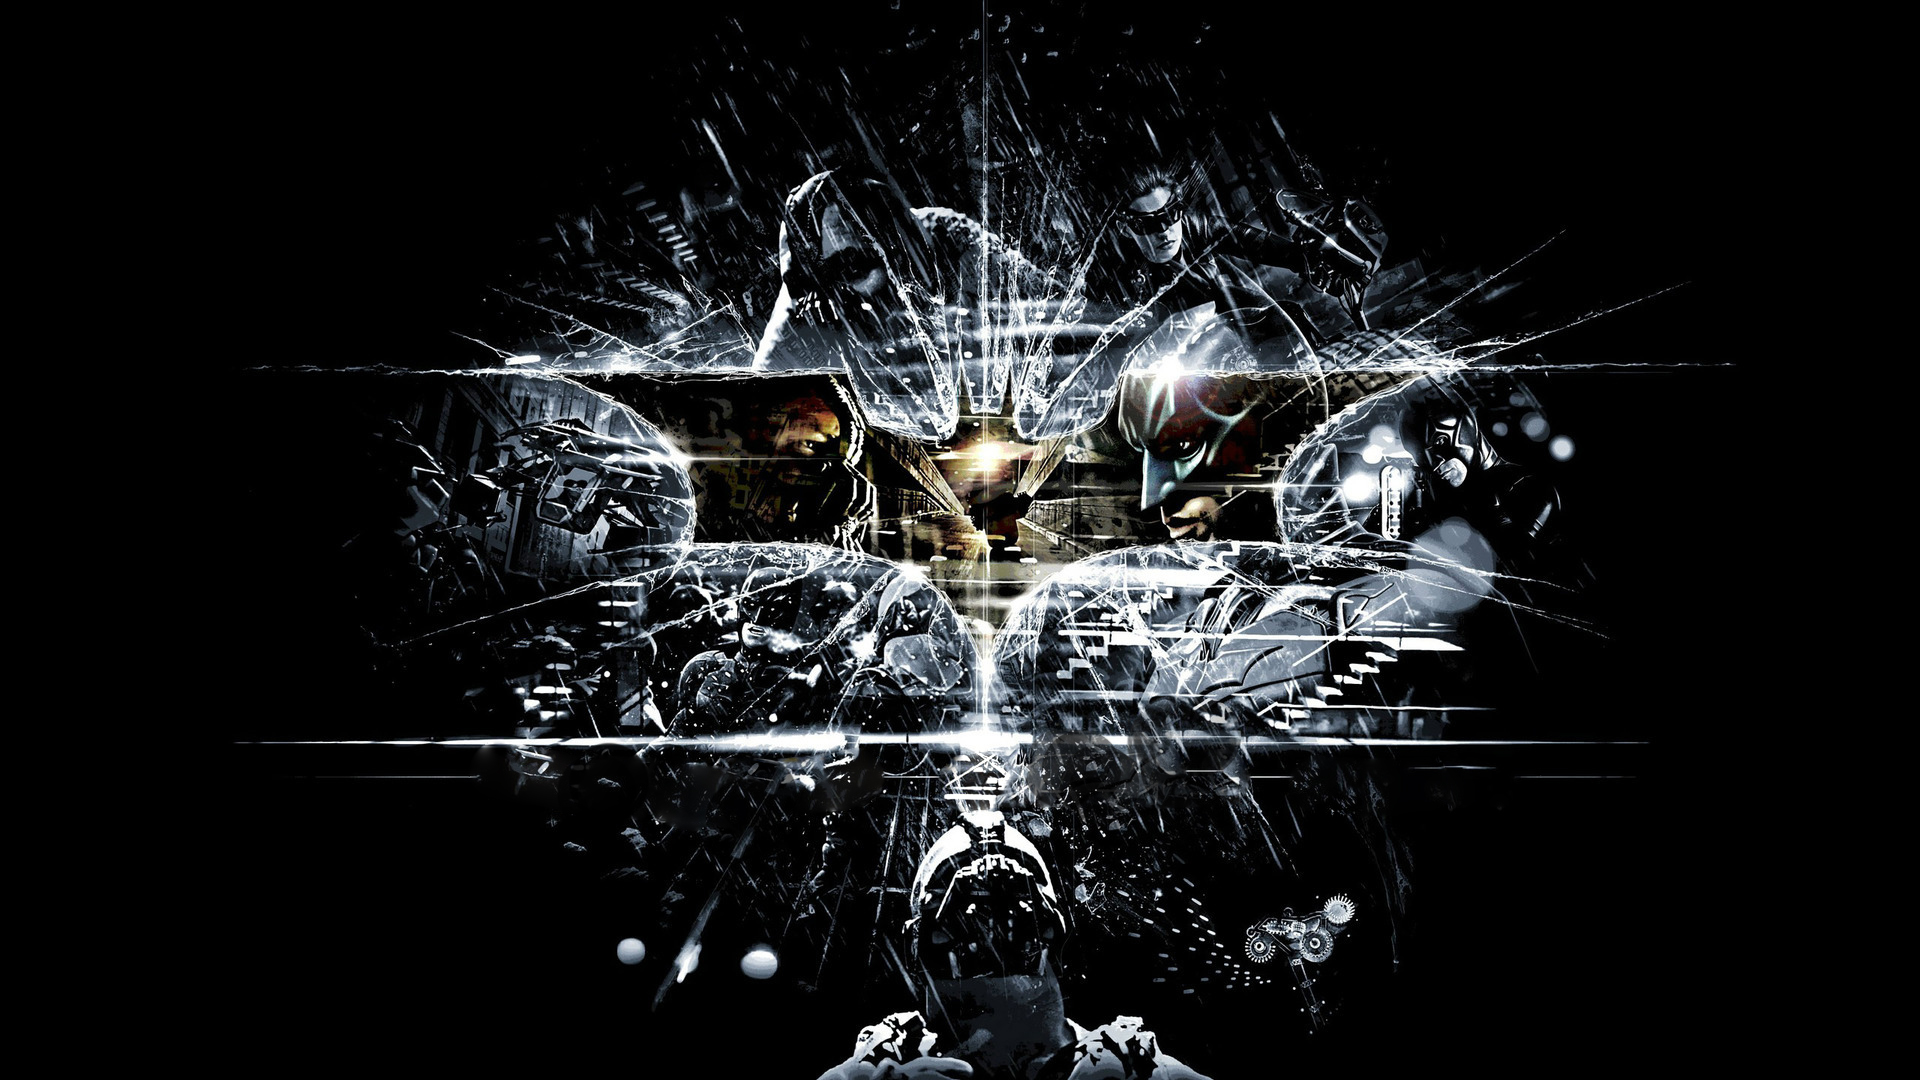 The Dark Knight Rises Wallpaper Set « Awesome Wallpapers |Dark Knight Rises Iphone Wallpaper